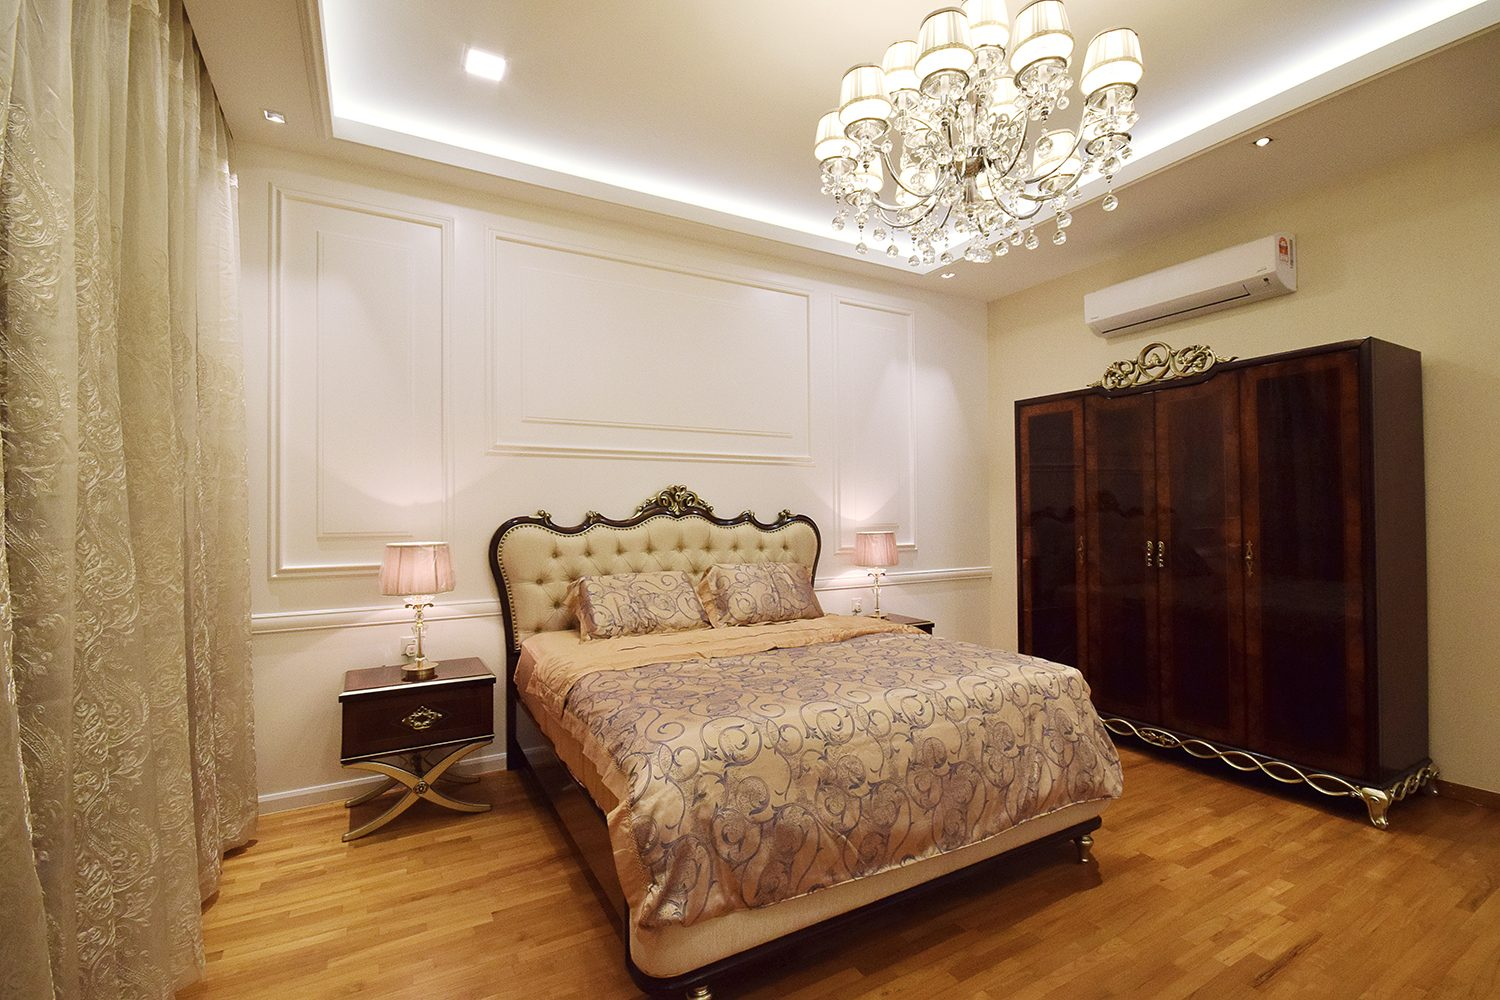 Victorian-inspired bedroom with ornate furniture and heavy drapery for this bungalow in Kajang Jade Hill